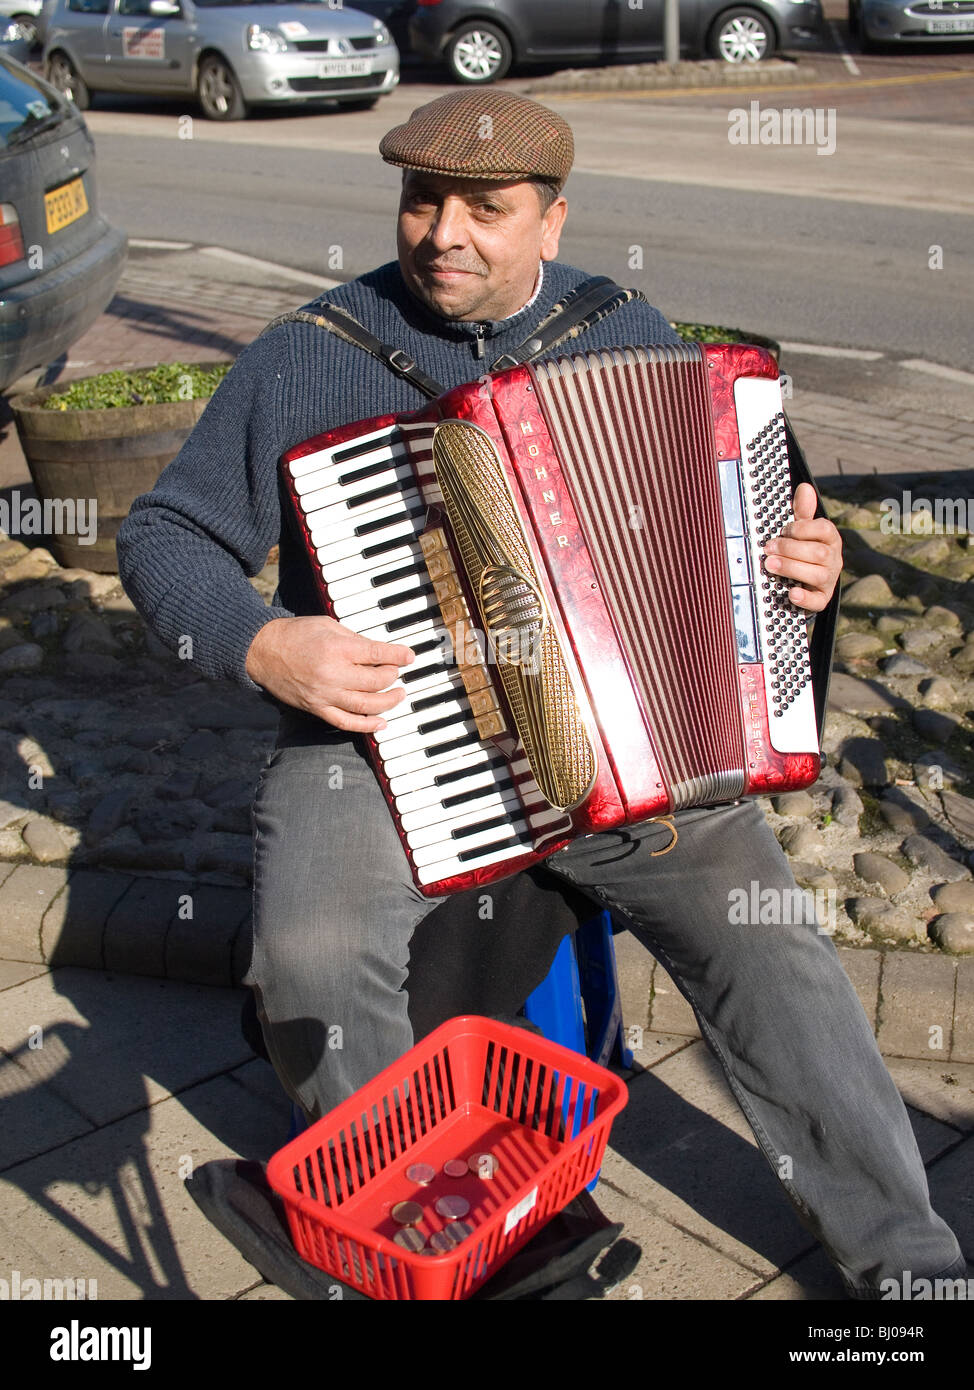 An Eastern European street musician playing a piano accordian in the spring sunshine in Northallerton North Yorkshire - Stock Image